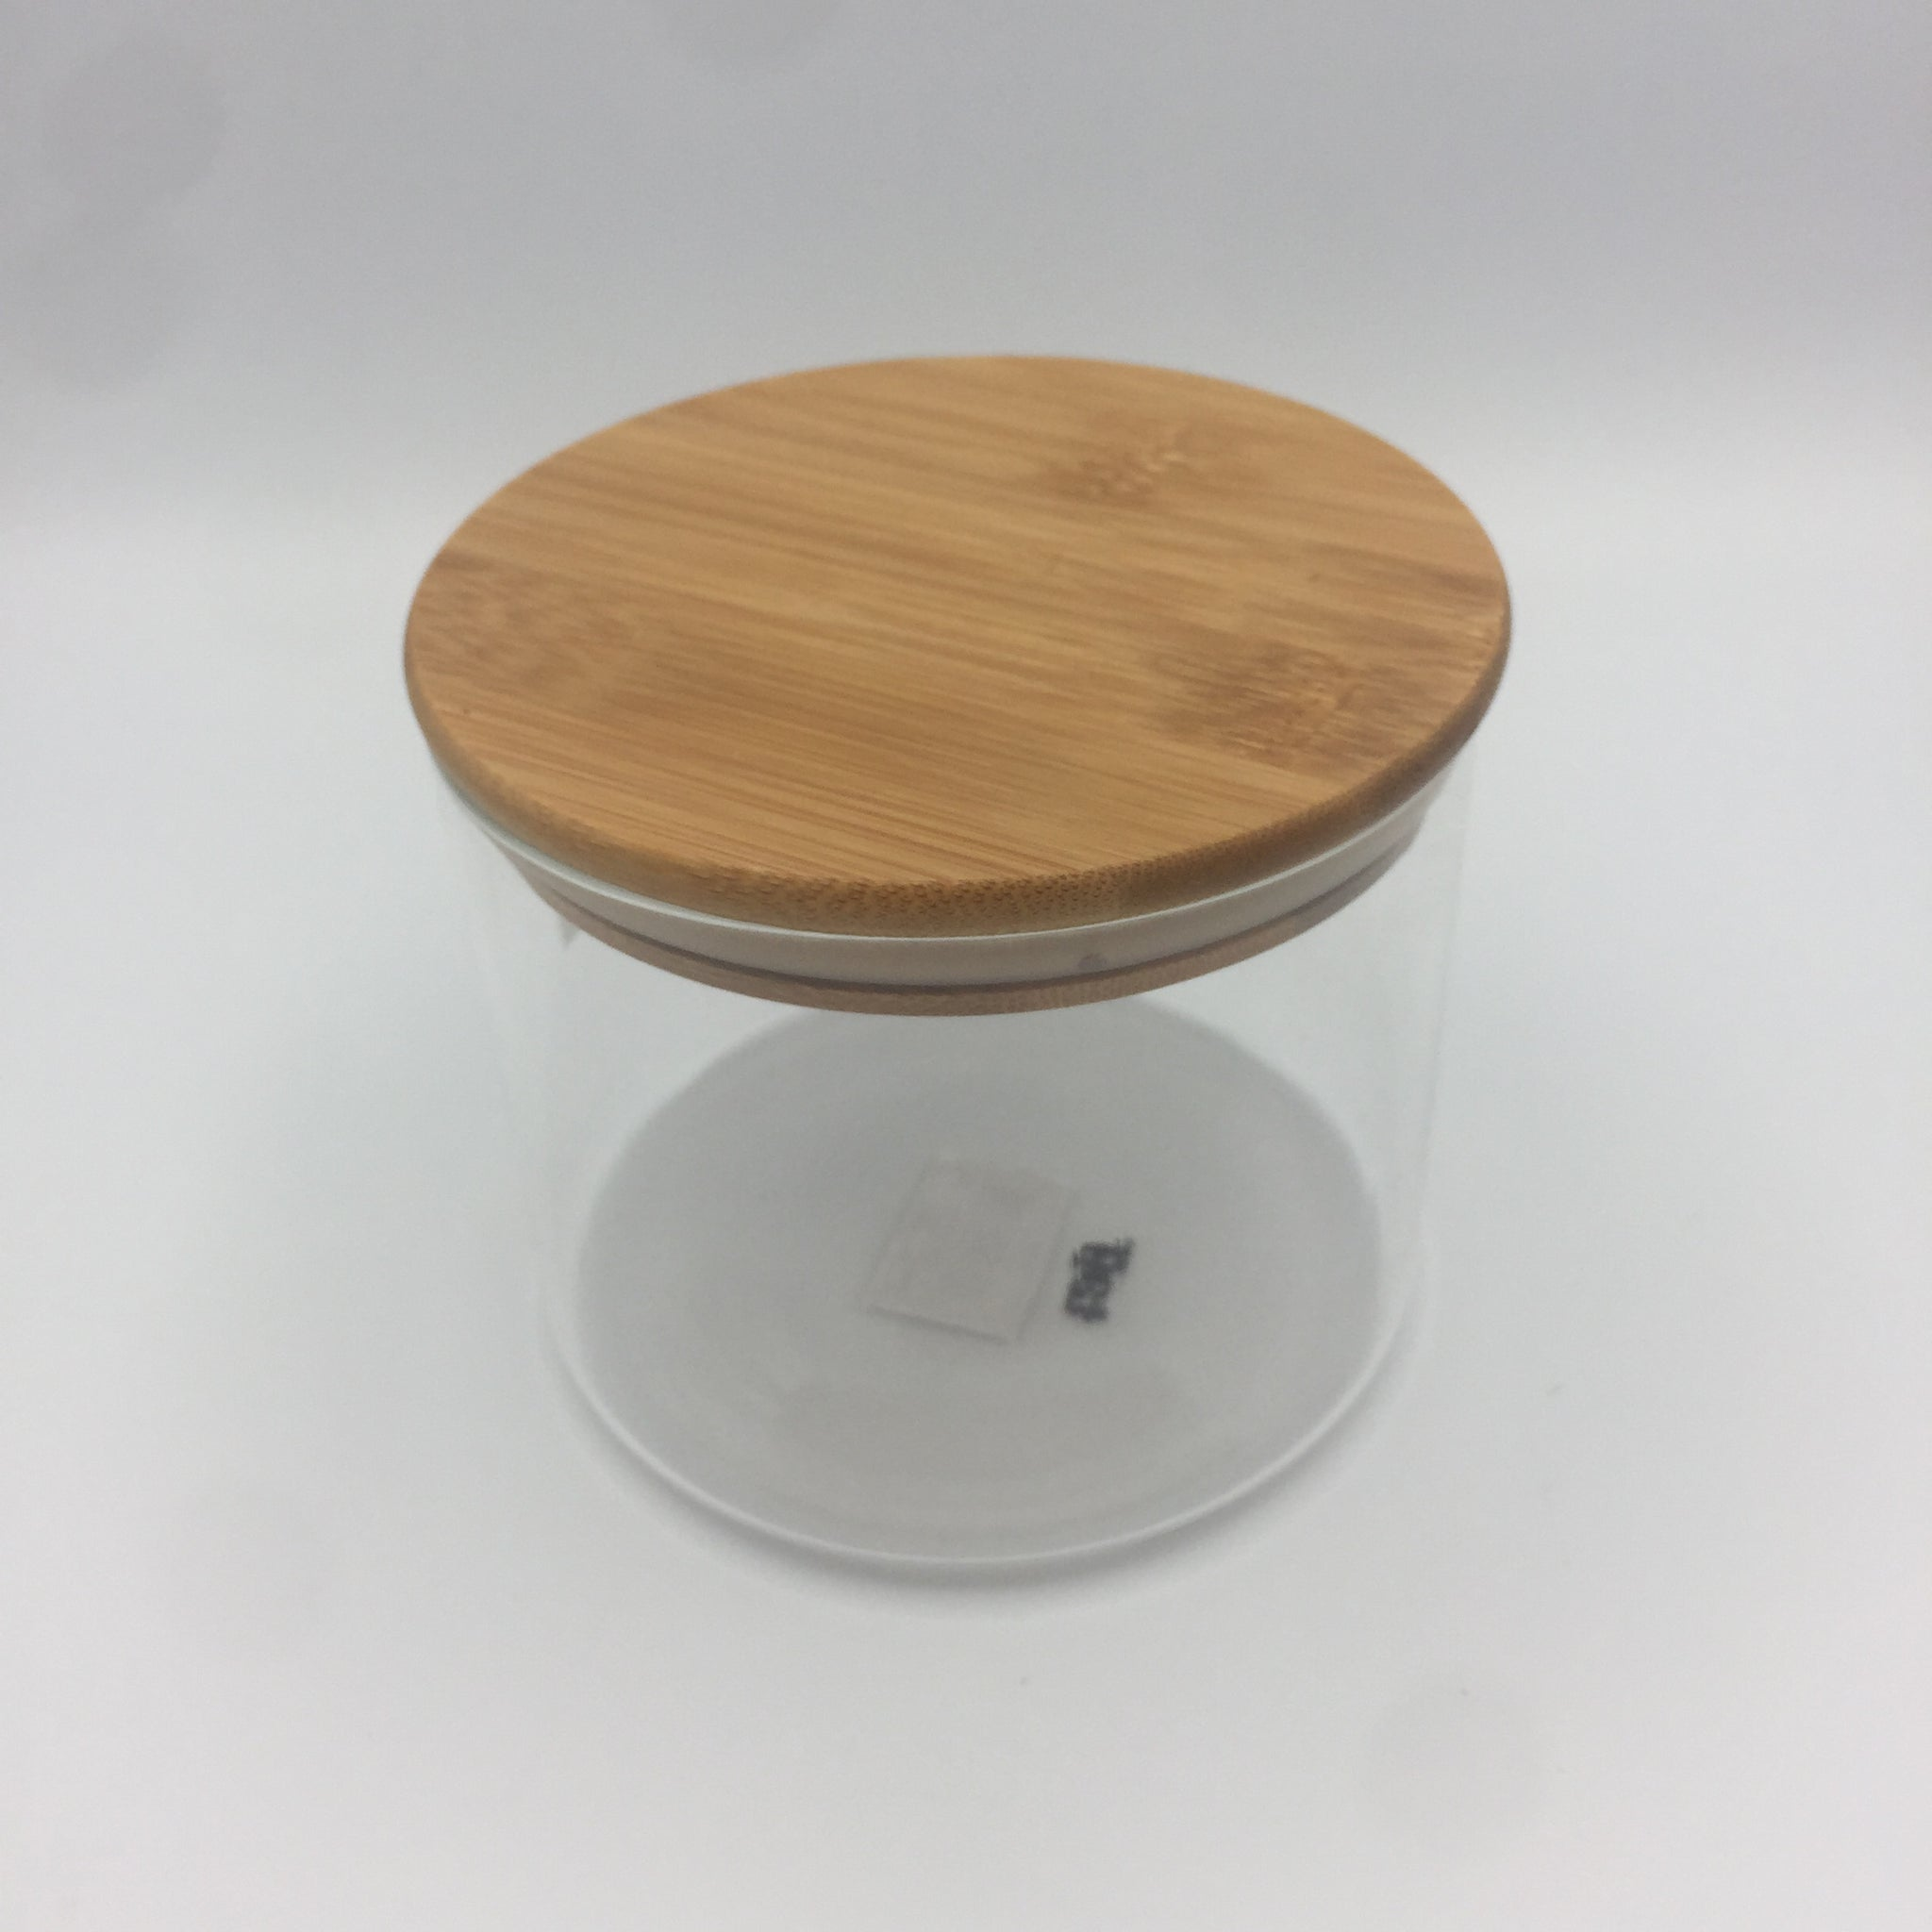 Glass Container with Wood Lid